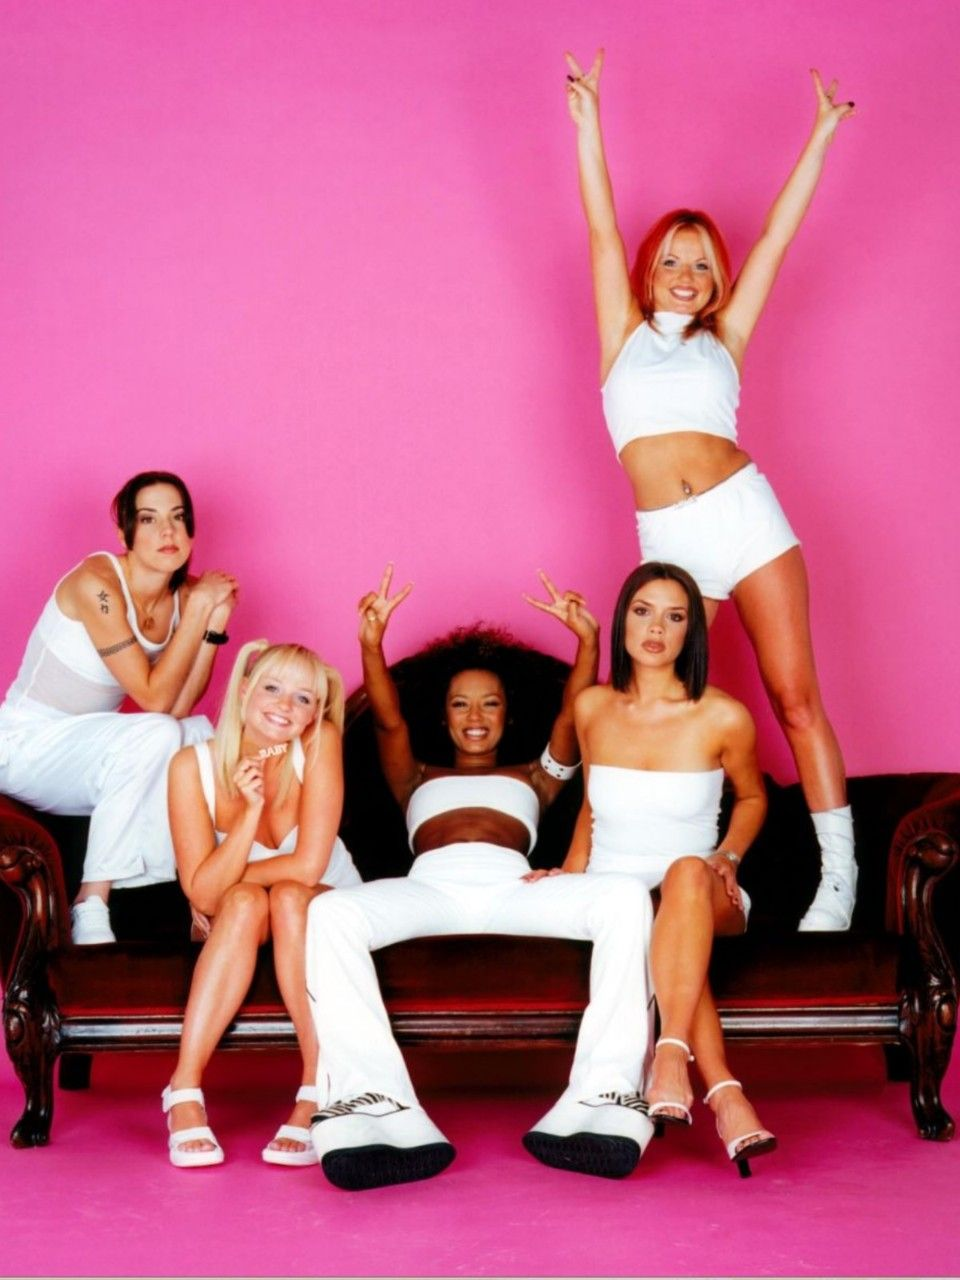 The spice girls naked